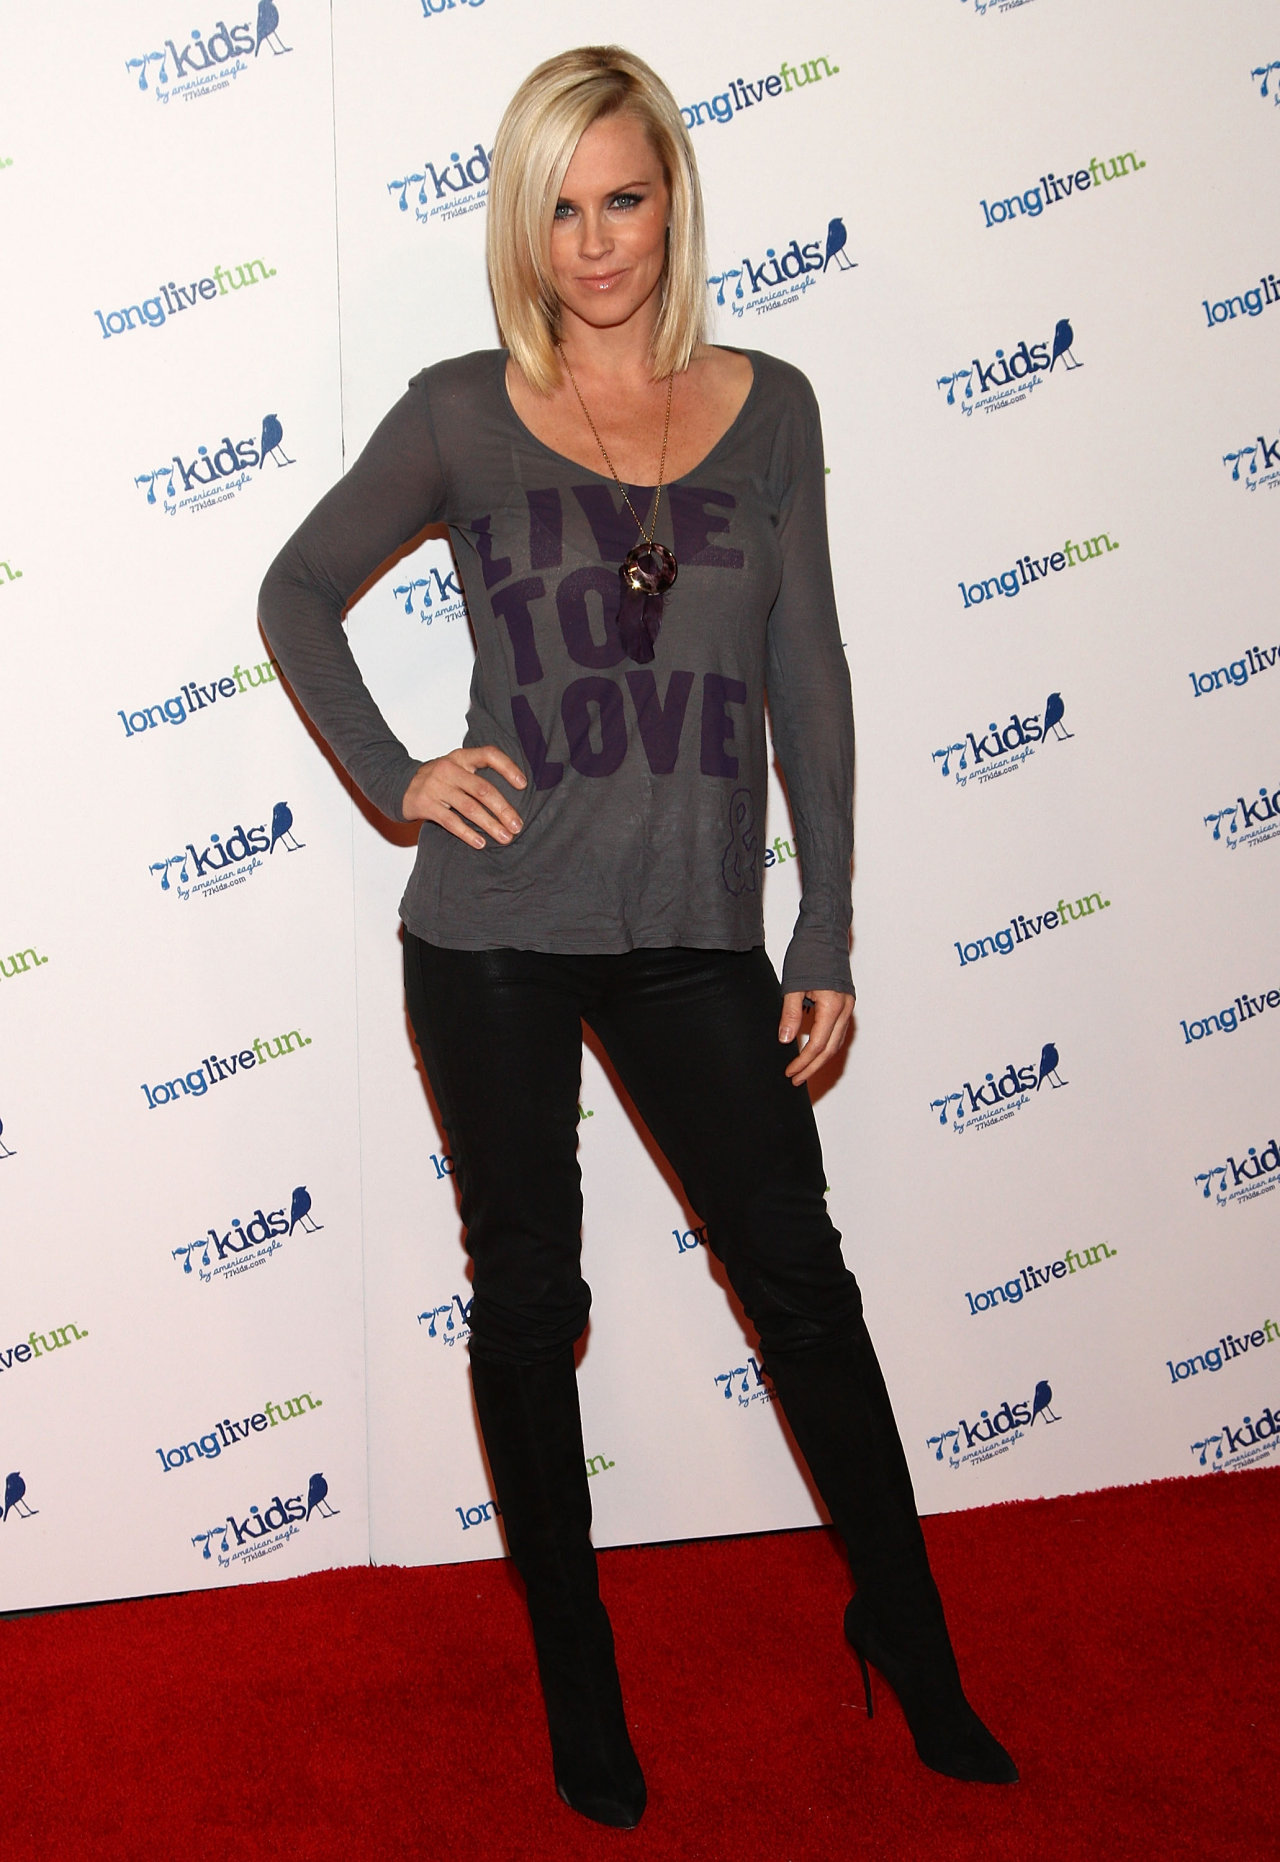 Jenny mccarthy wallpapers 73707 top rated jenny mccarthy photos